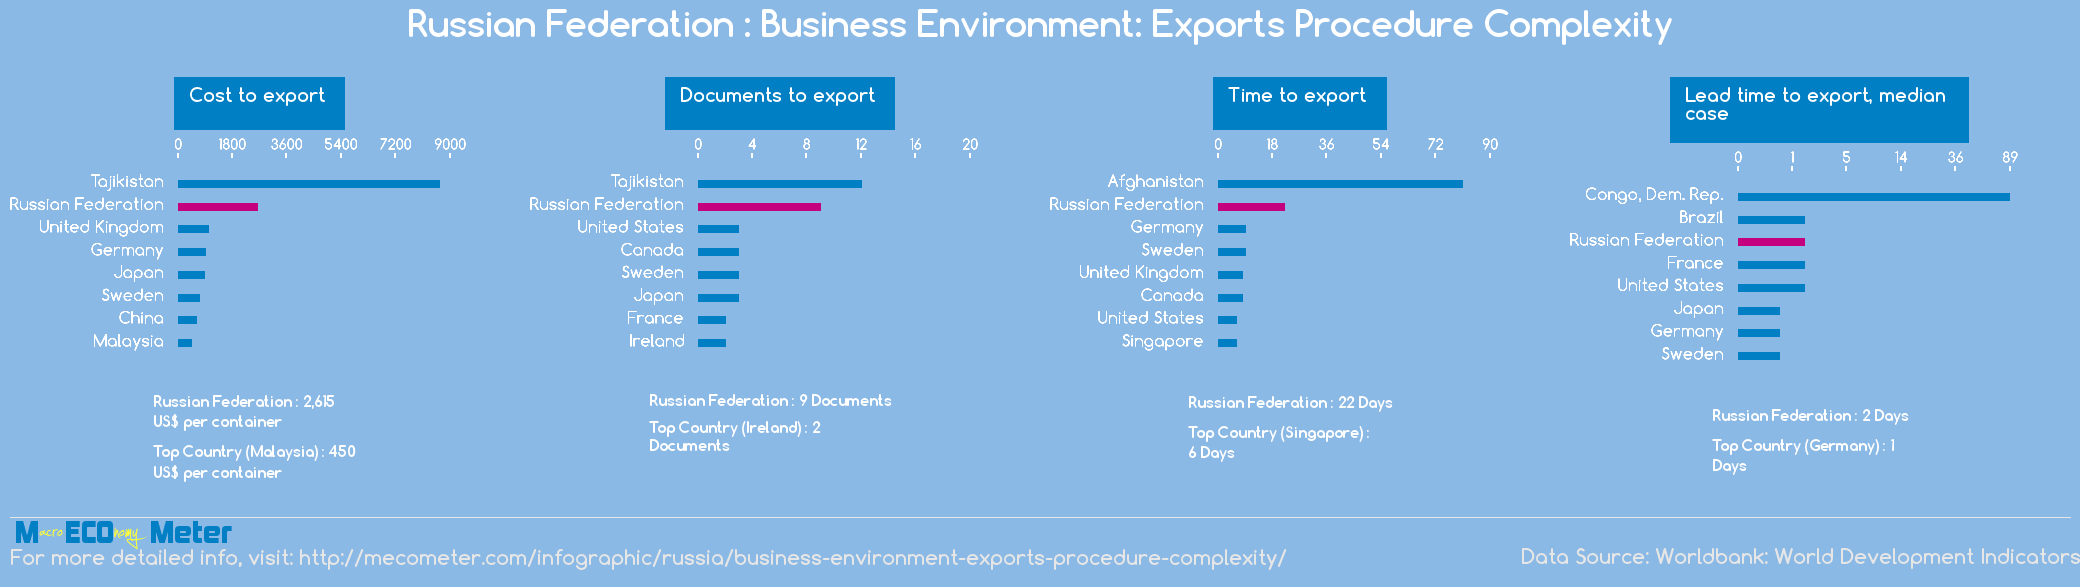 Russian Federation : Business Environment: Exports Procedure Complexity